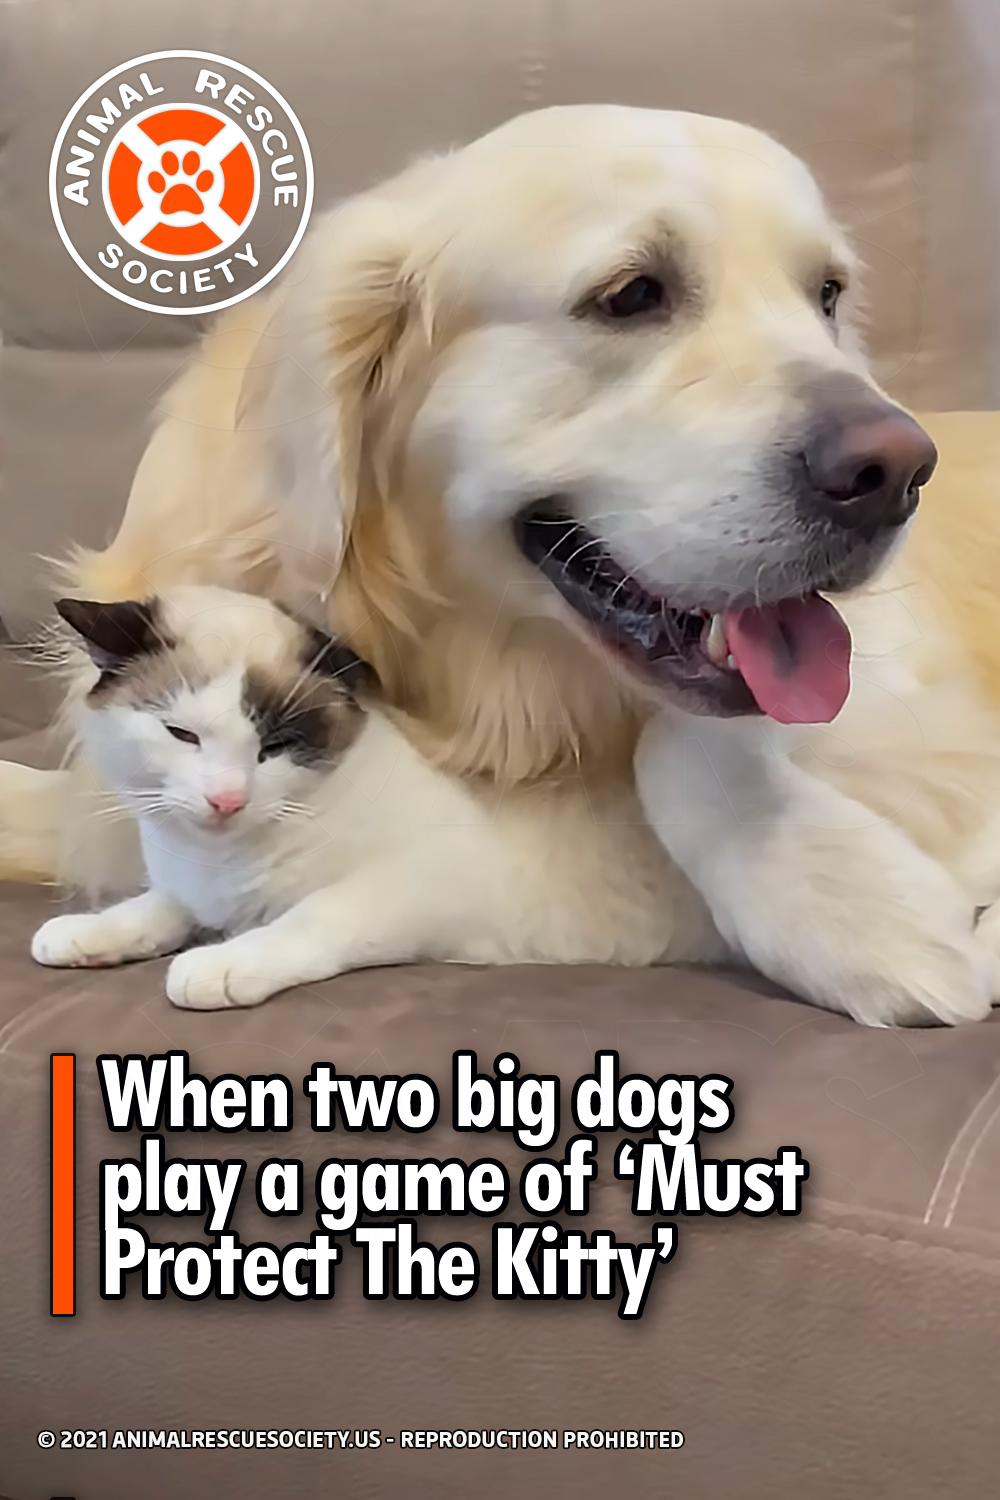 When two big dogs play a game of 'Must Protect The Kitty'